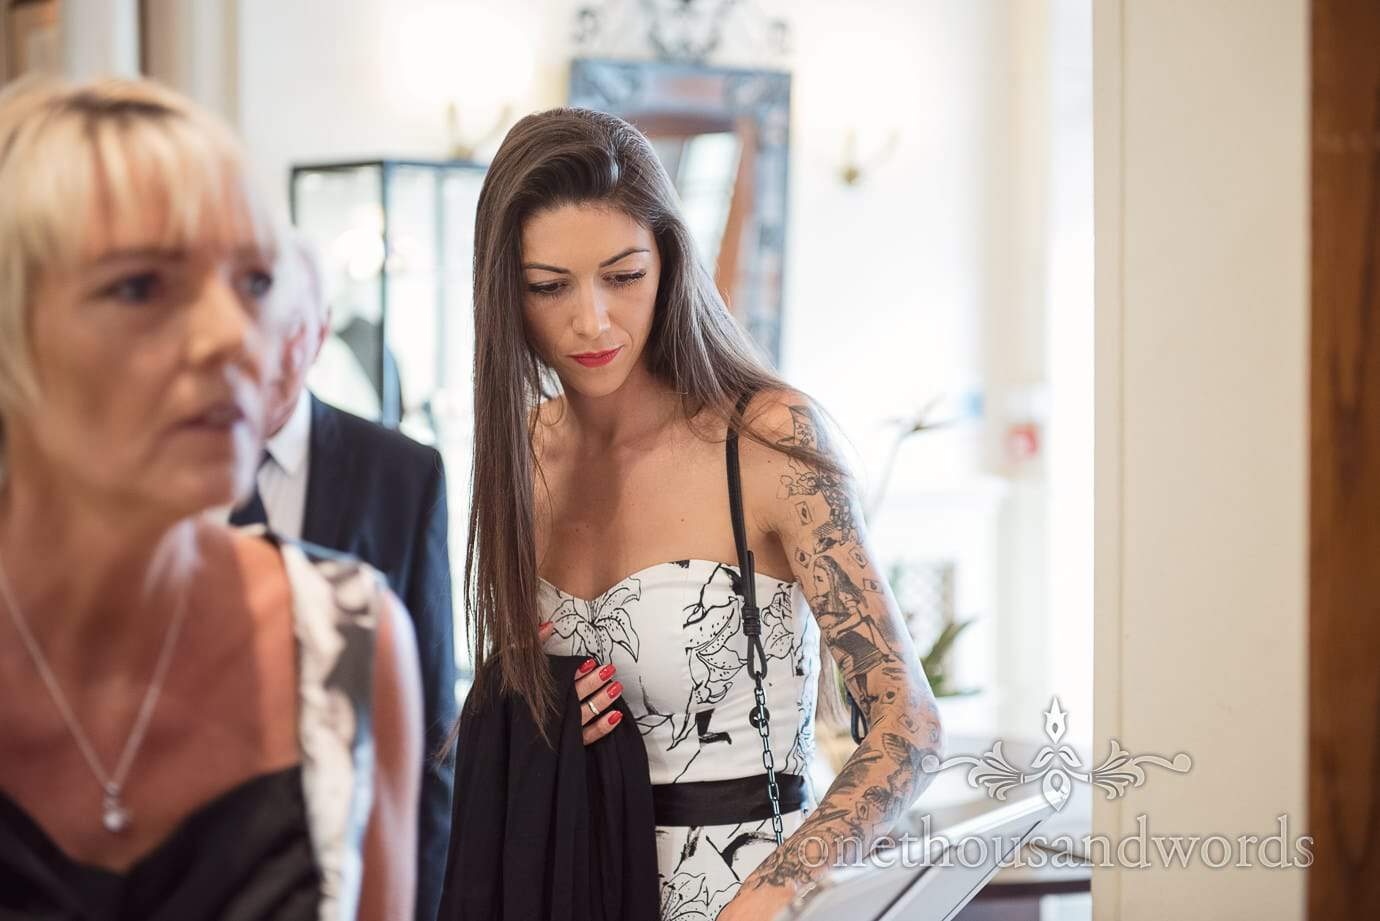 Beautiful Rock and Roll wedding guest with tattoo sleeve and black and white dress